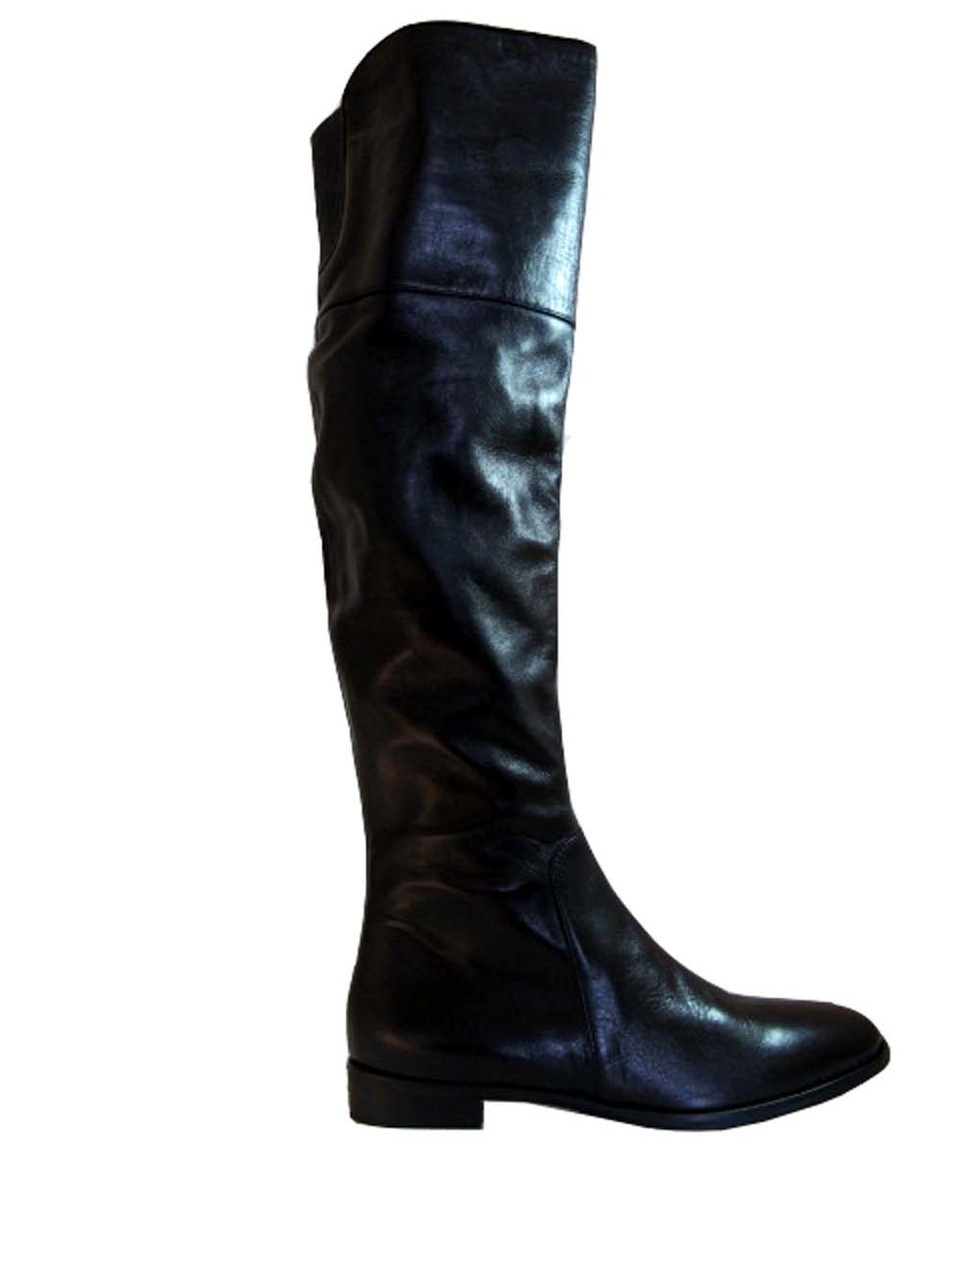 91df61c9a80 Julie Dee Women s Italian Leather 6627 Flat Knee High boots Black italian.   399.00. Julie Dee 6627 Knee High boots